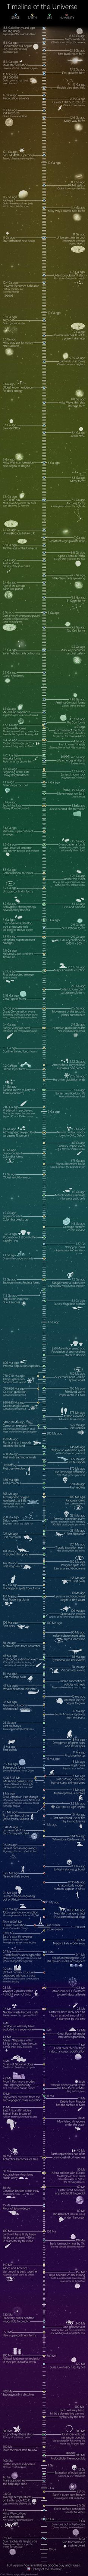 A quick and entertaining way to learn about the history and the far future of the Universe and the solar system.